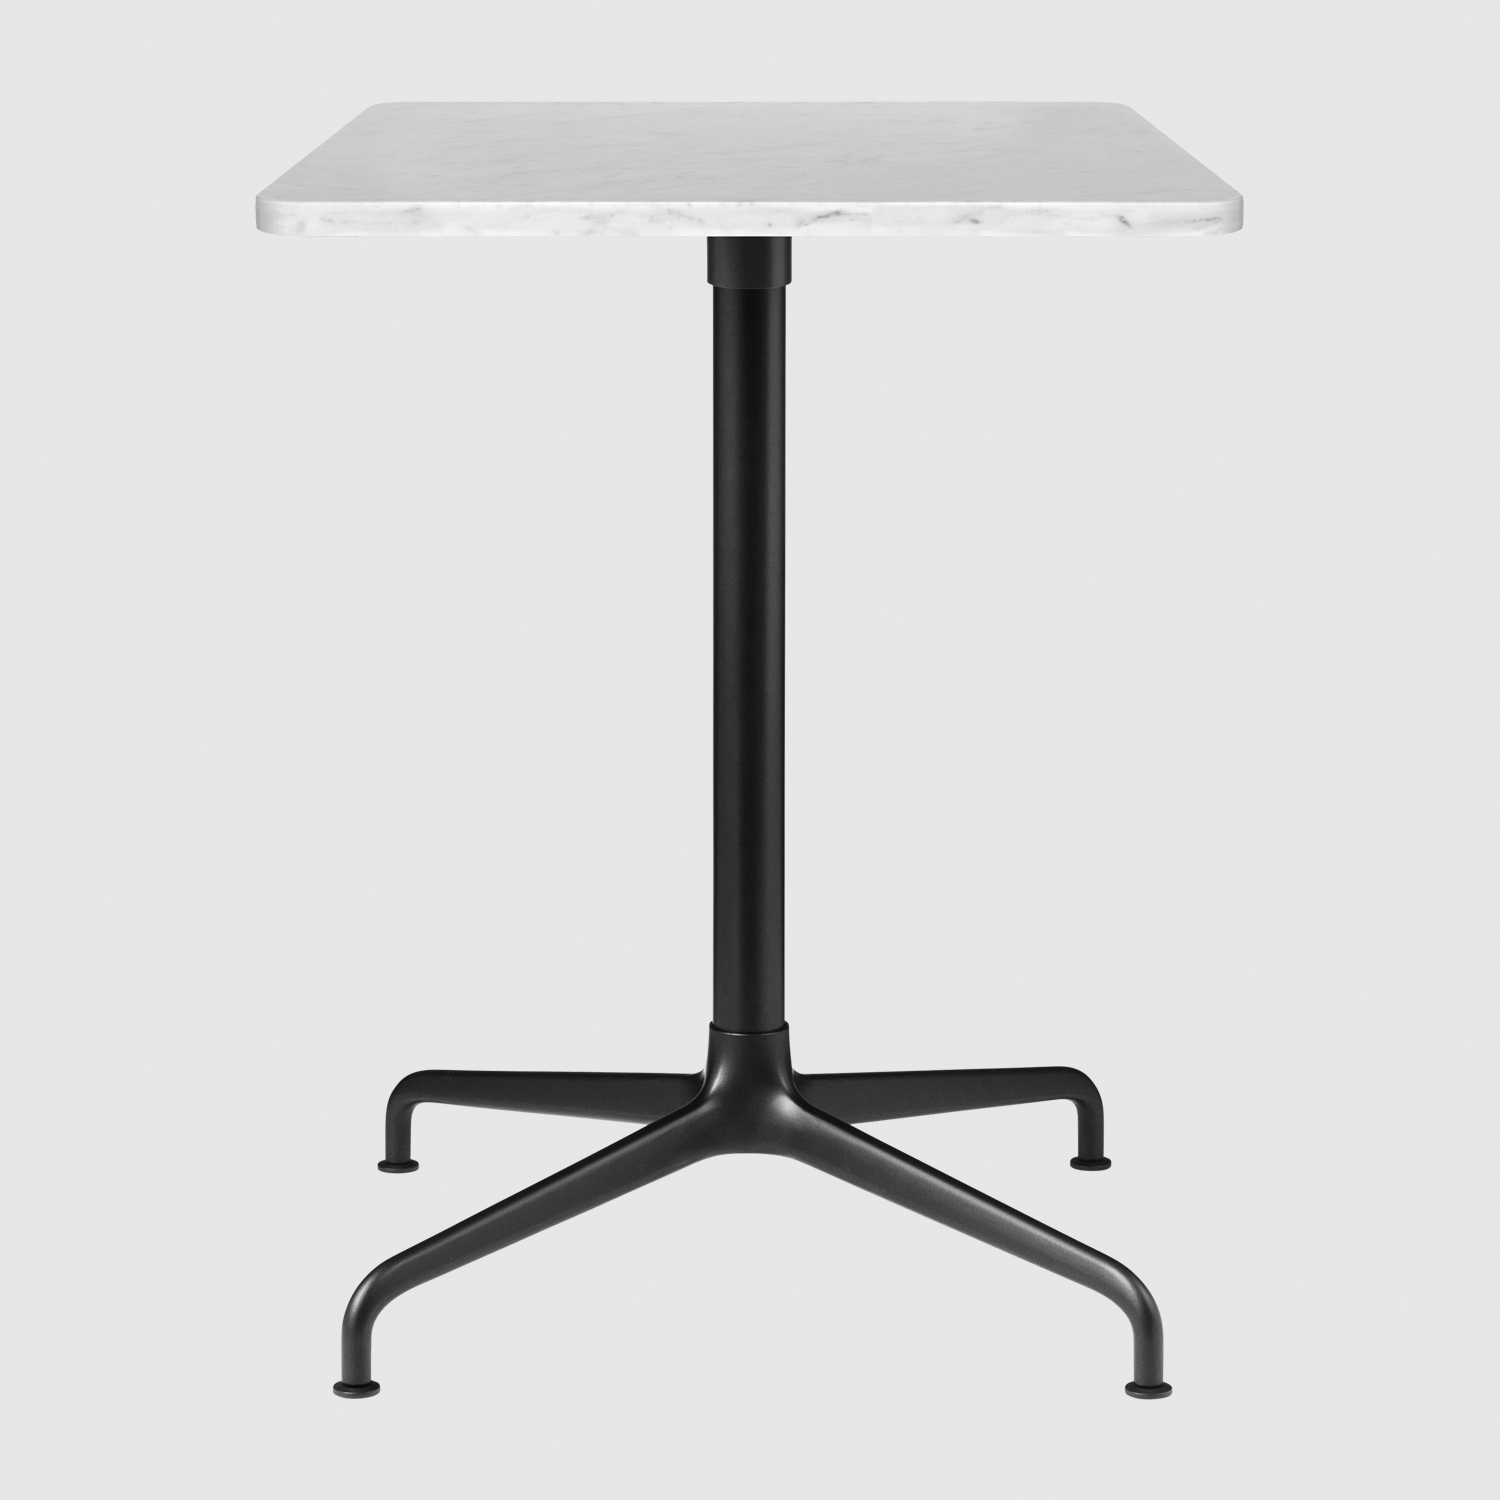 Dining Table: H72cm, 60x60 or 75x75cm